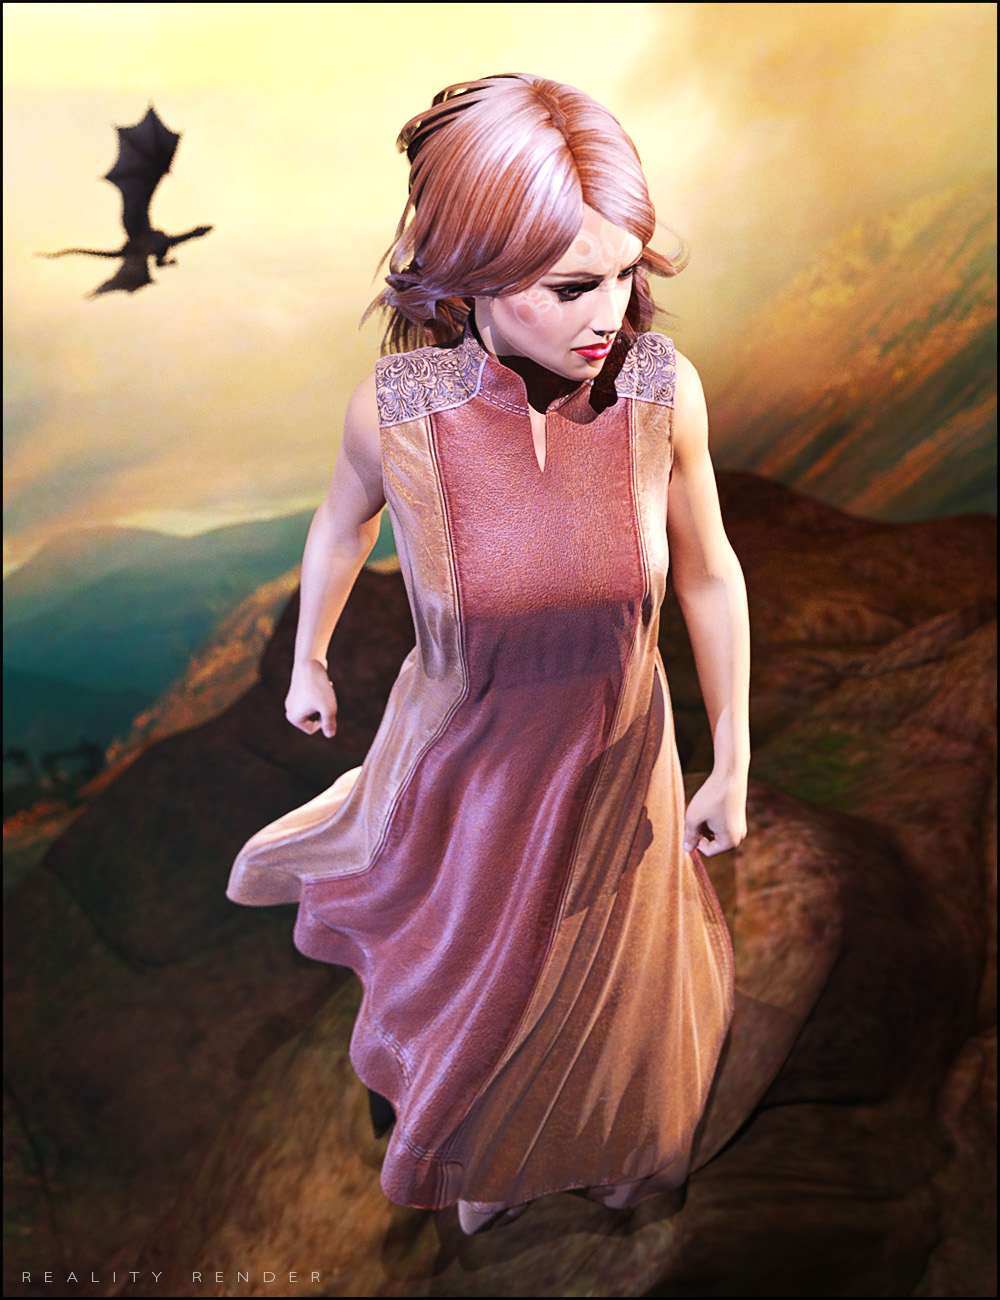 High Garden Outfit Textures by: SHIFTING IMAGES, 3D Models by Daz 3D